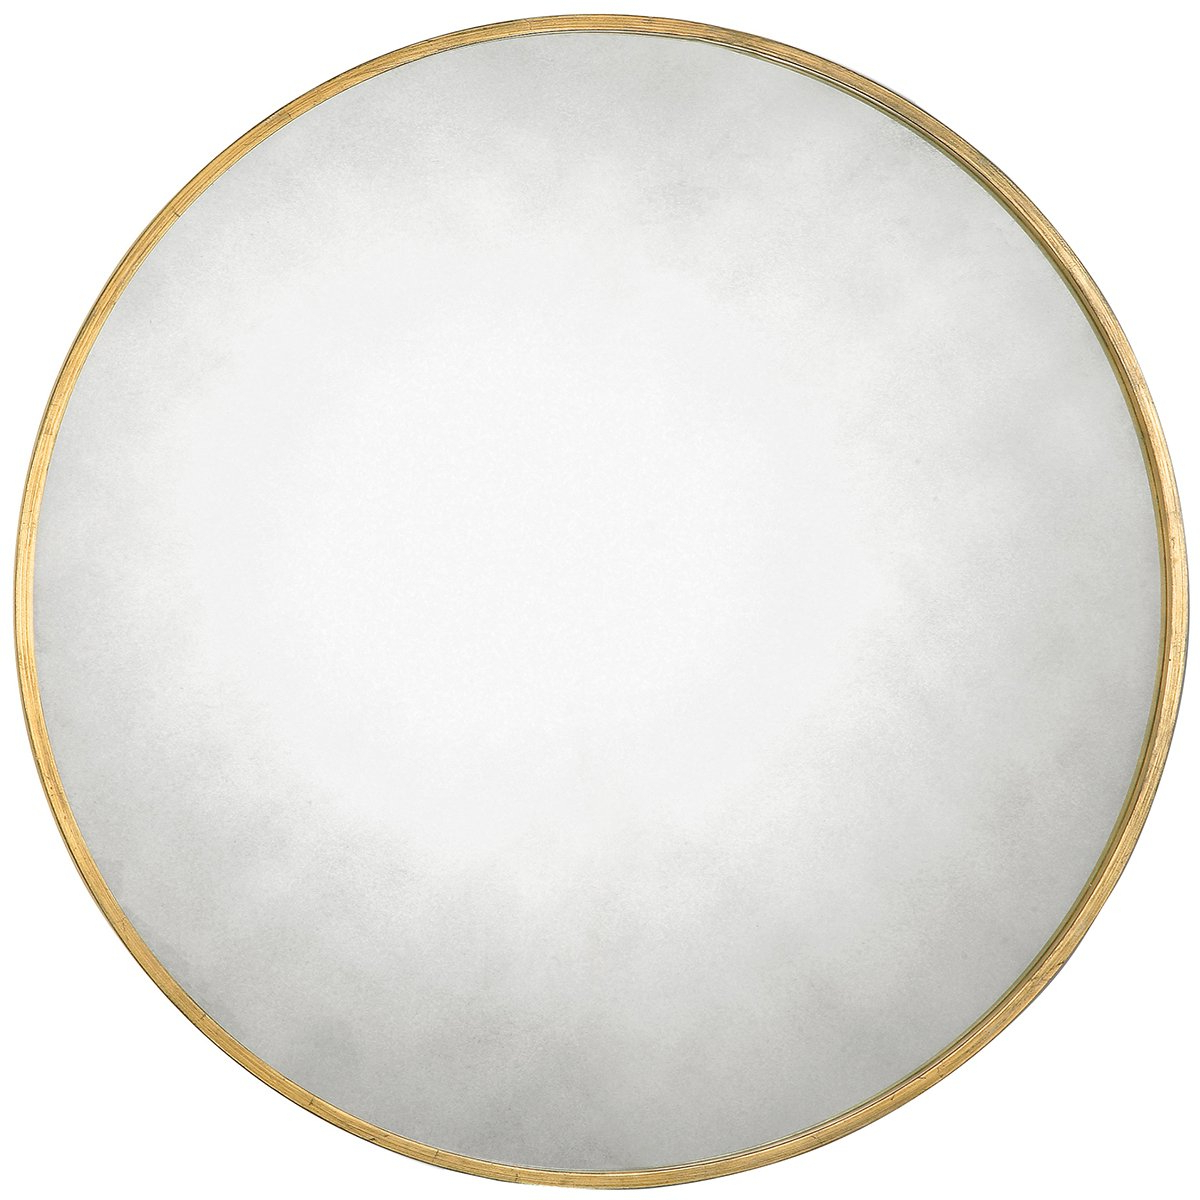 Mahanoy Modern And Contemporary Distressed Accent Mirrors Within Latest Uttermost 13887 Junius Round Mirror, Gold (View 11 of 20)